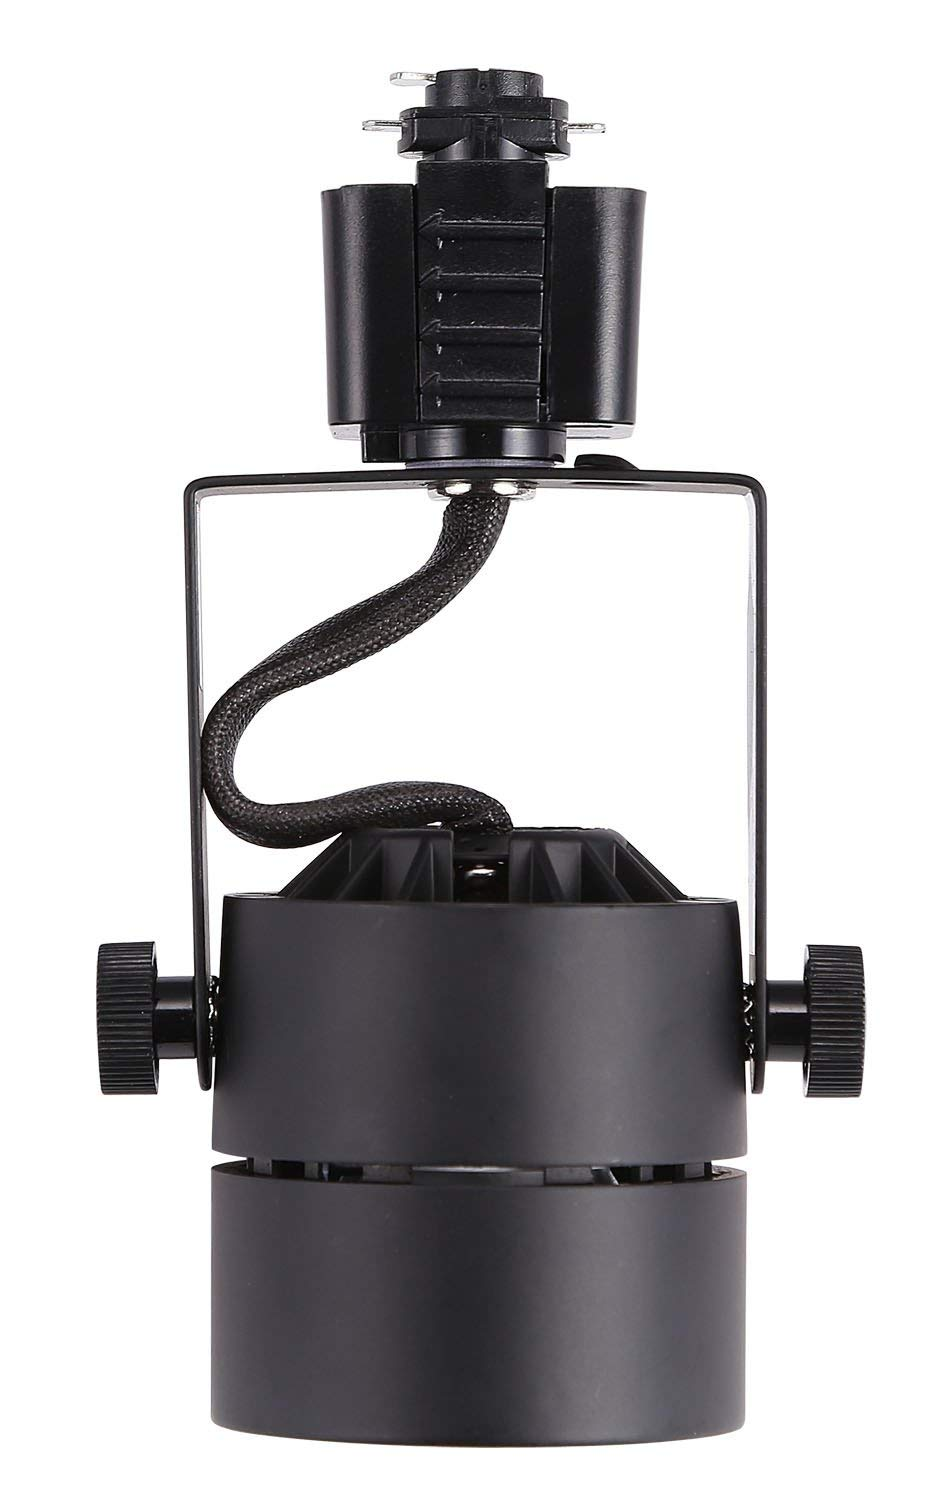 Track Light Head, Dimmable LED, Adjustable Tilt Angle, Warm white (3000K), Black, 120V/8W/580lm